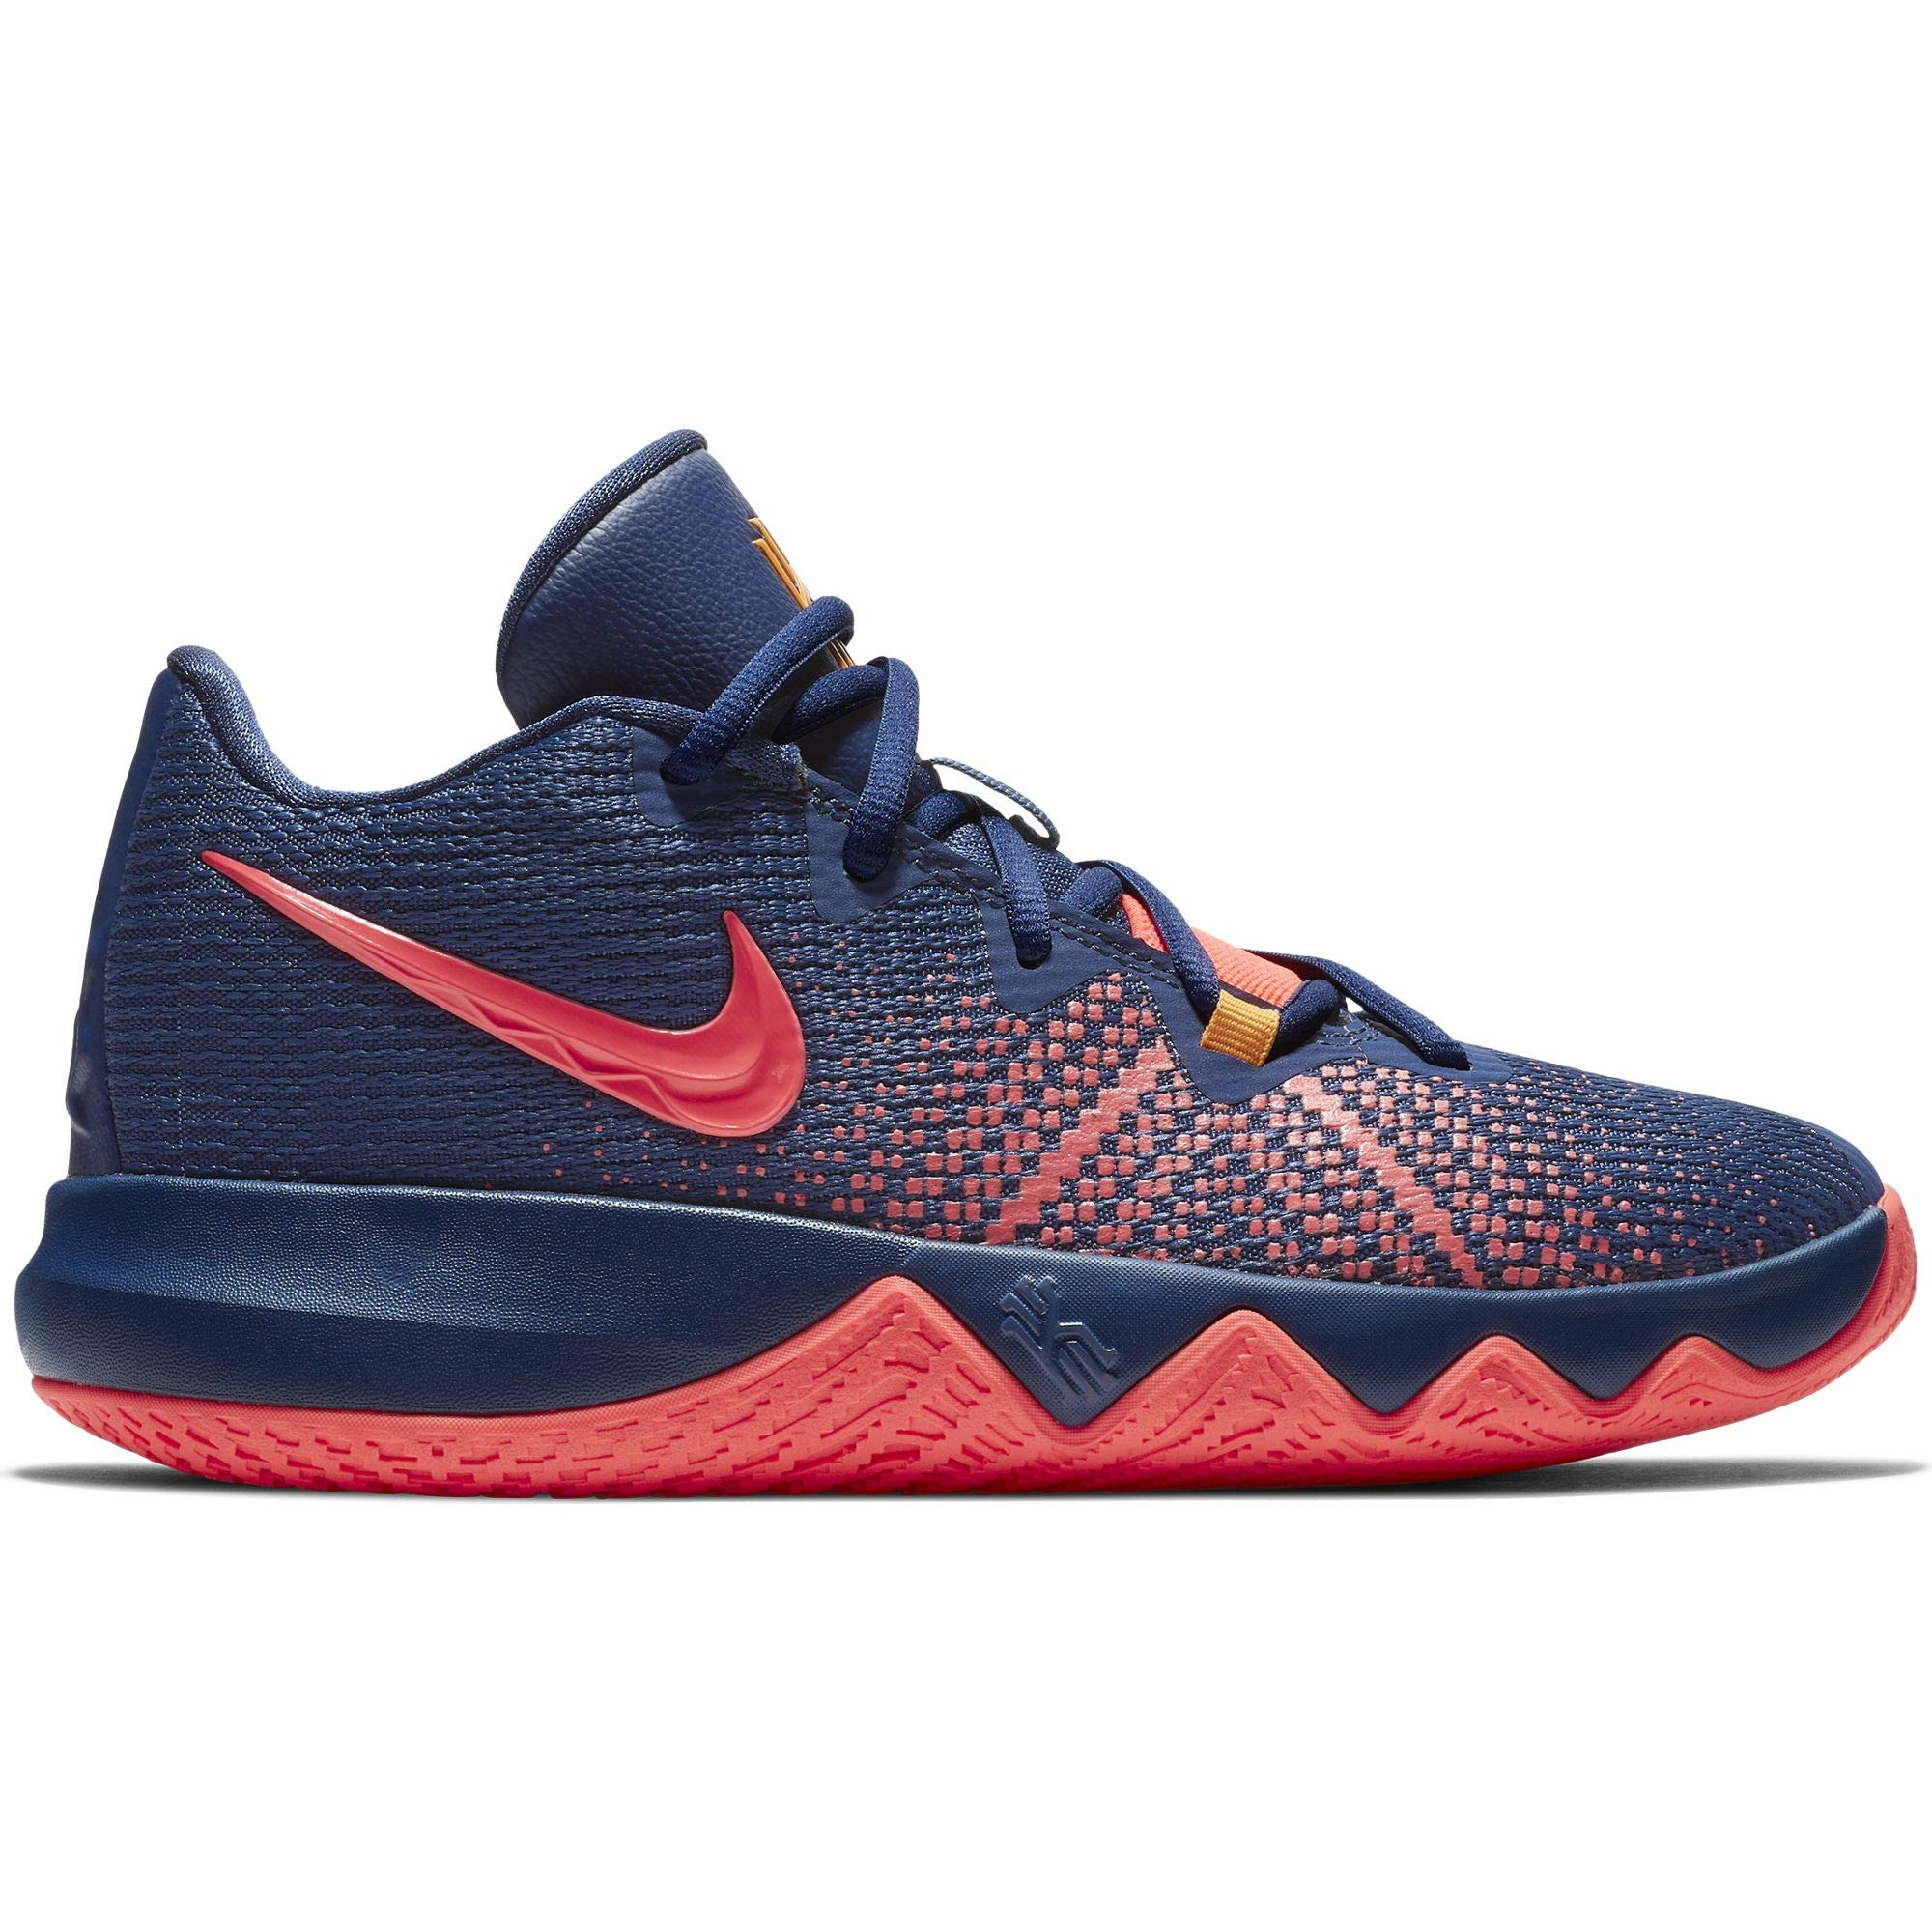 Nike Boy's Kyrie Flytrap Basketball Shoe Blue Void/Flash Crimson/Orange Peel Size 7 M US